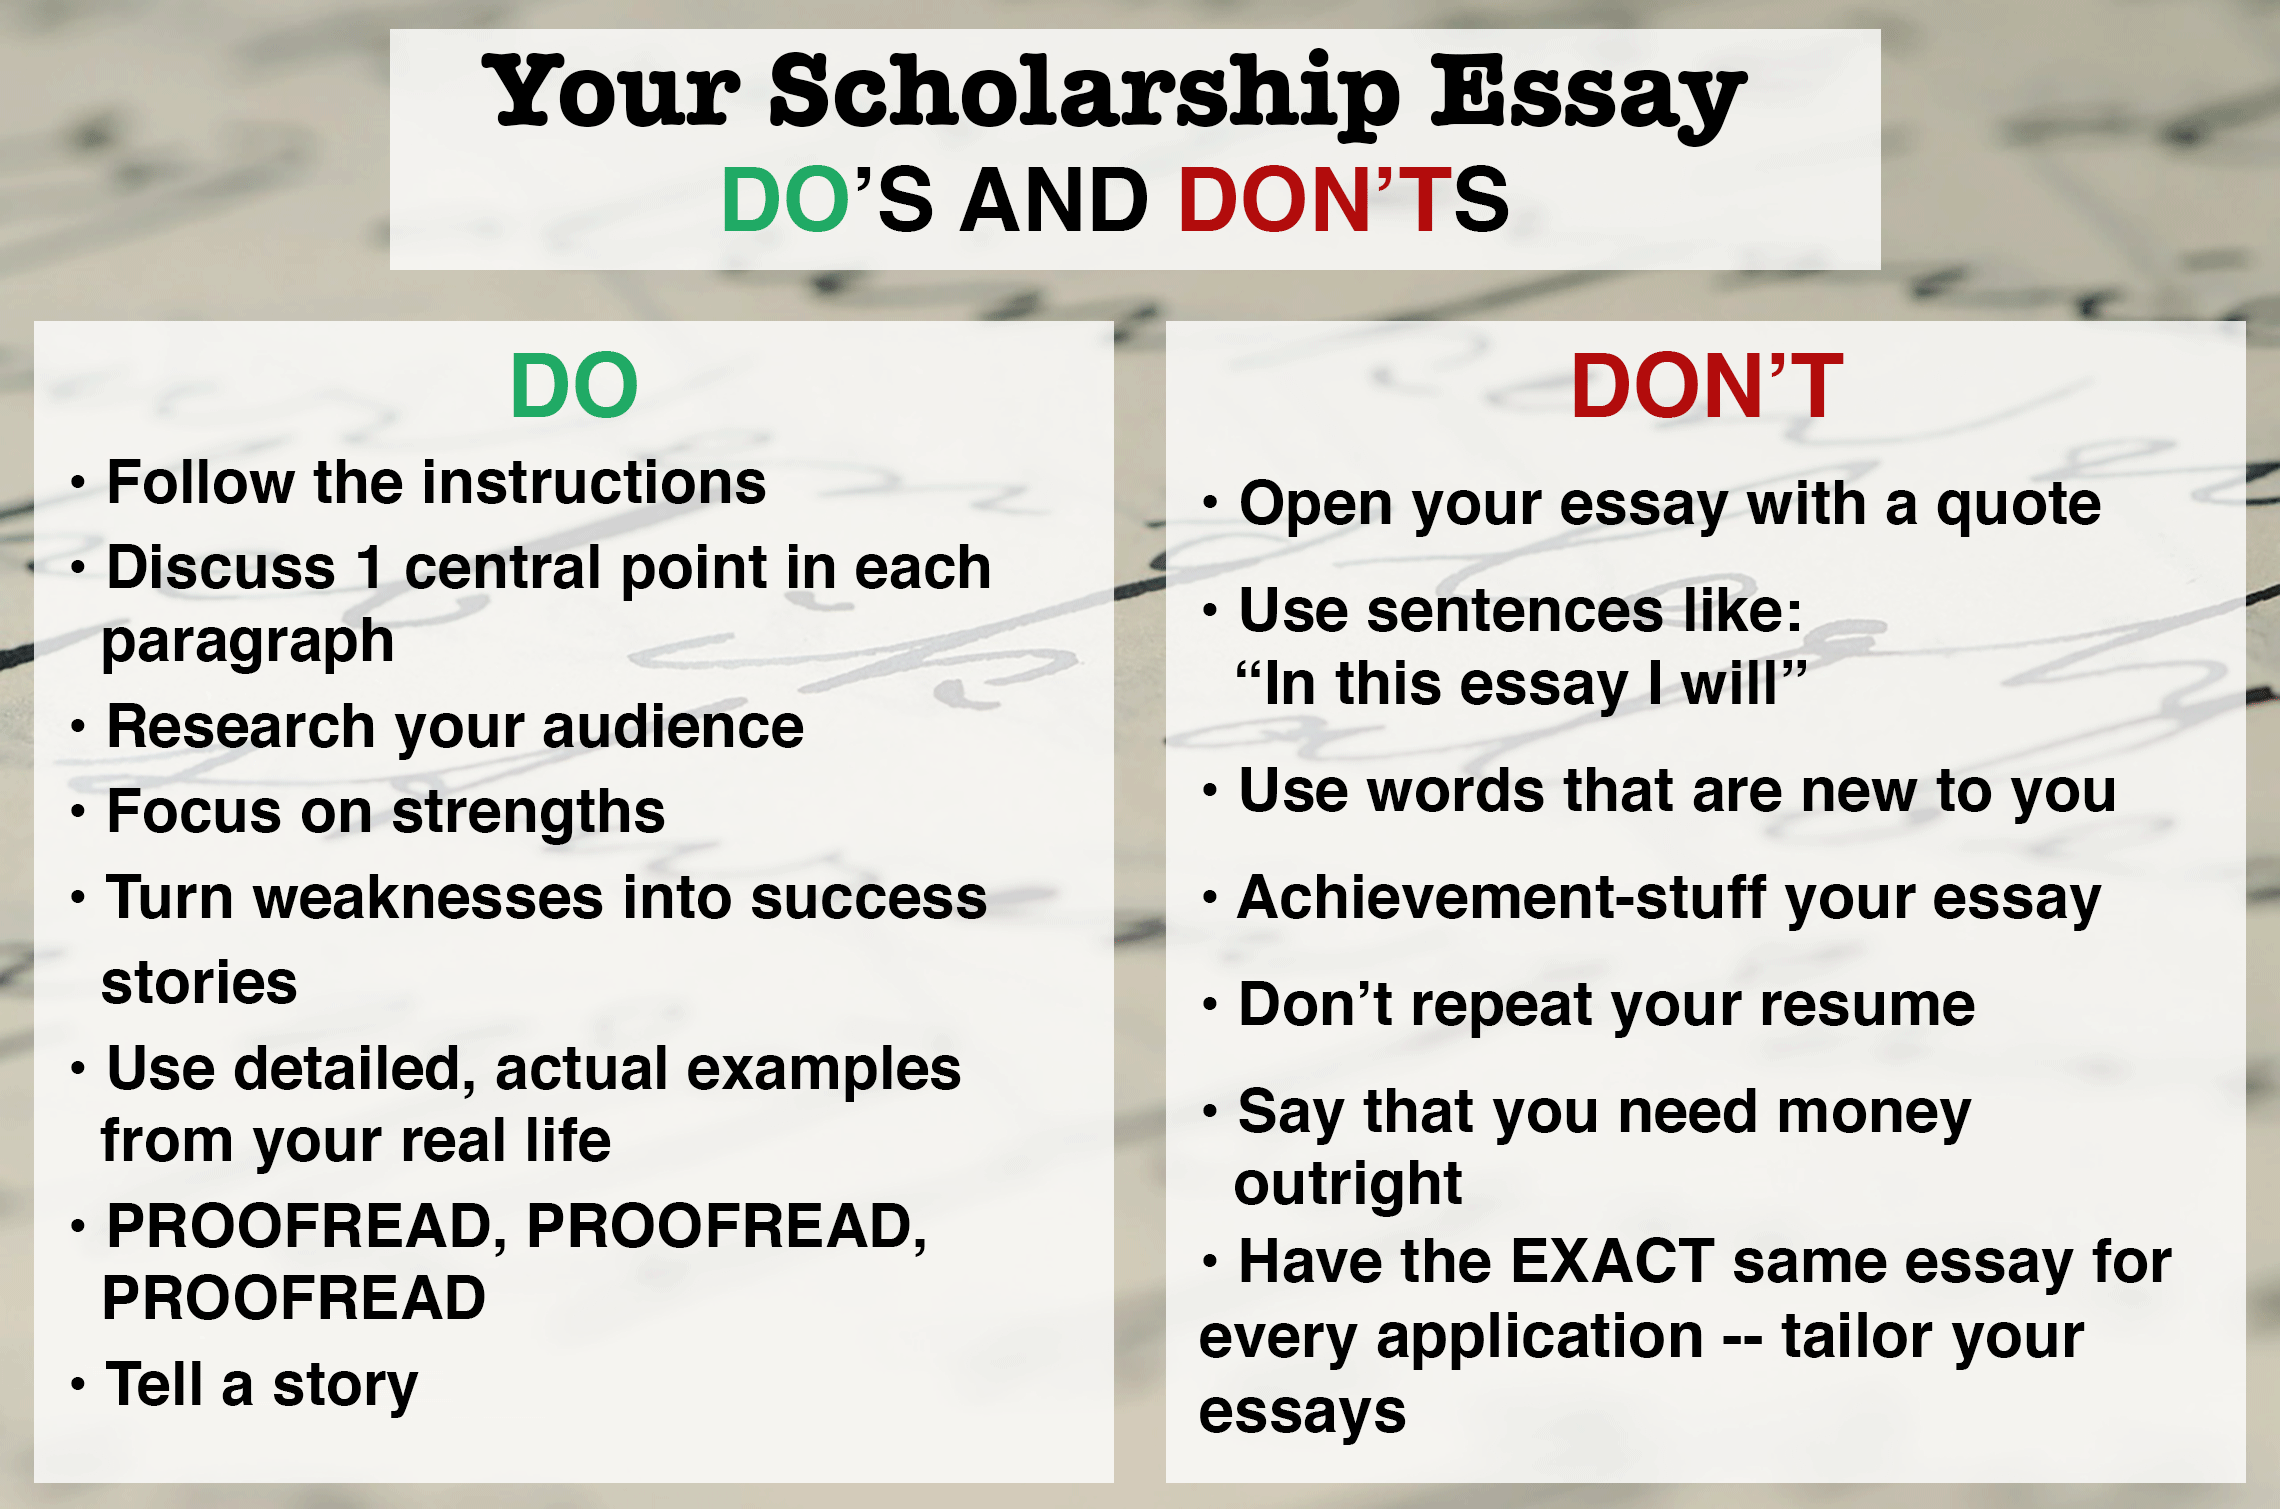 How To Write A Winning Scholarship Essay In  Steps Dosdontsscholes Sample Business School Essays also Sample High School Essays  Health Essay Sample